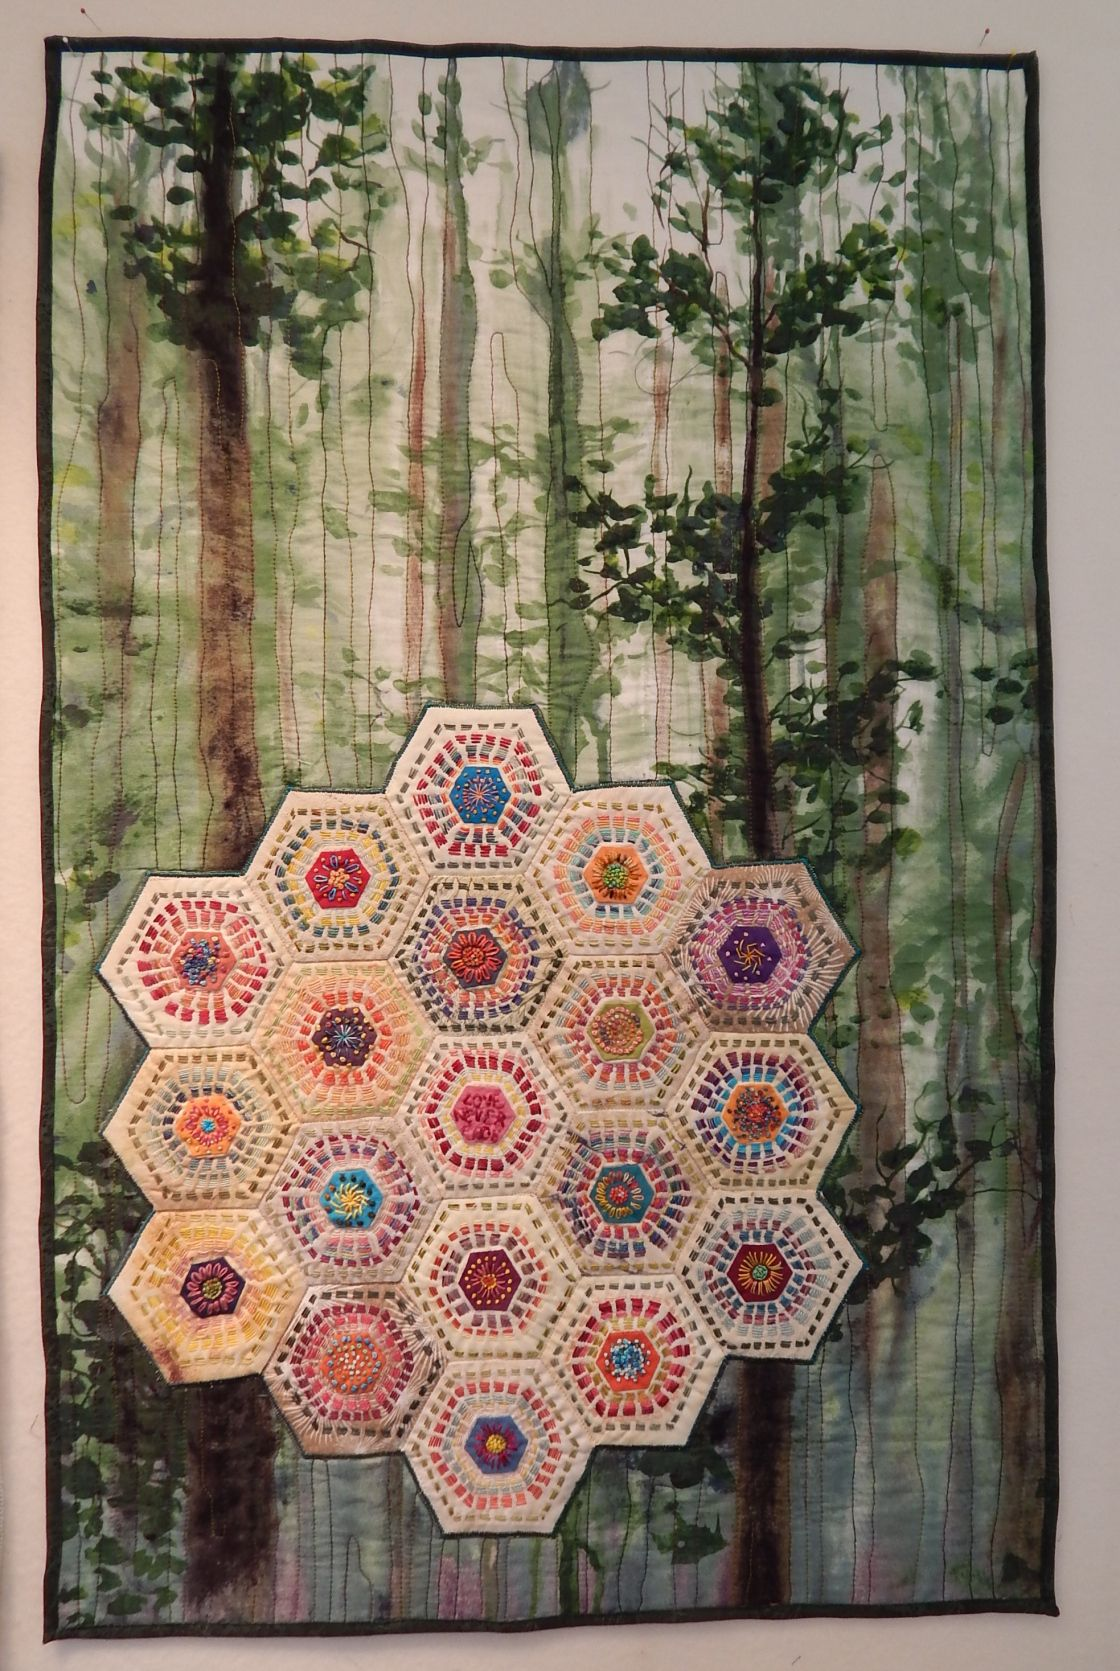 DSCN3985 Perle cotton, Quilts, Kantha embroidery